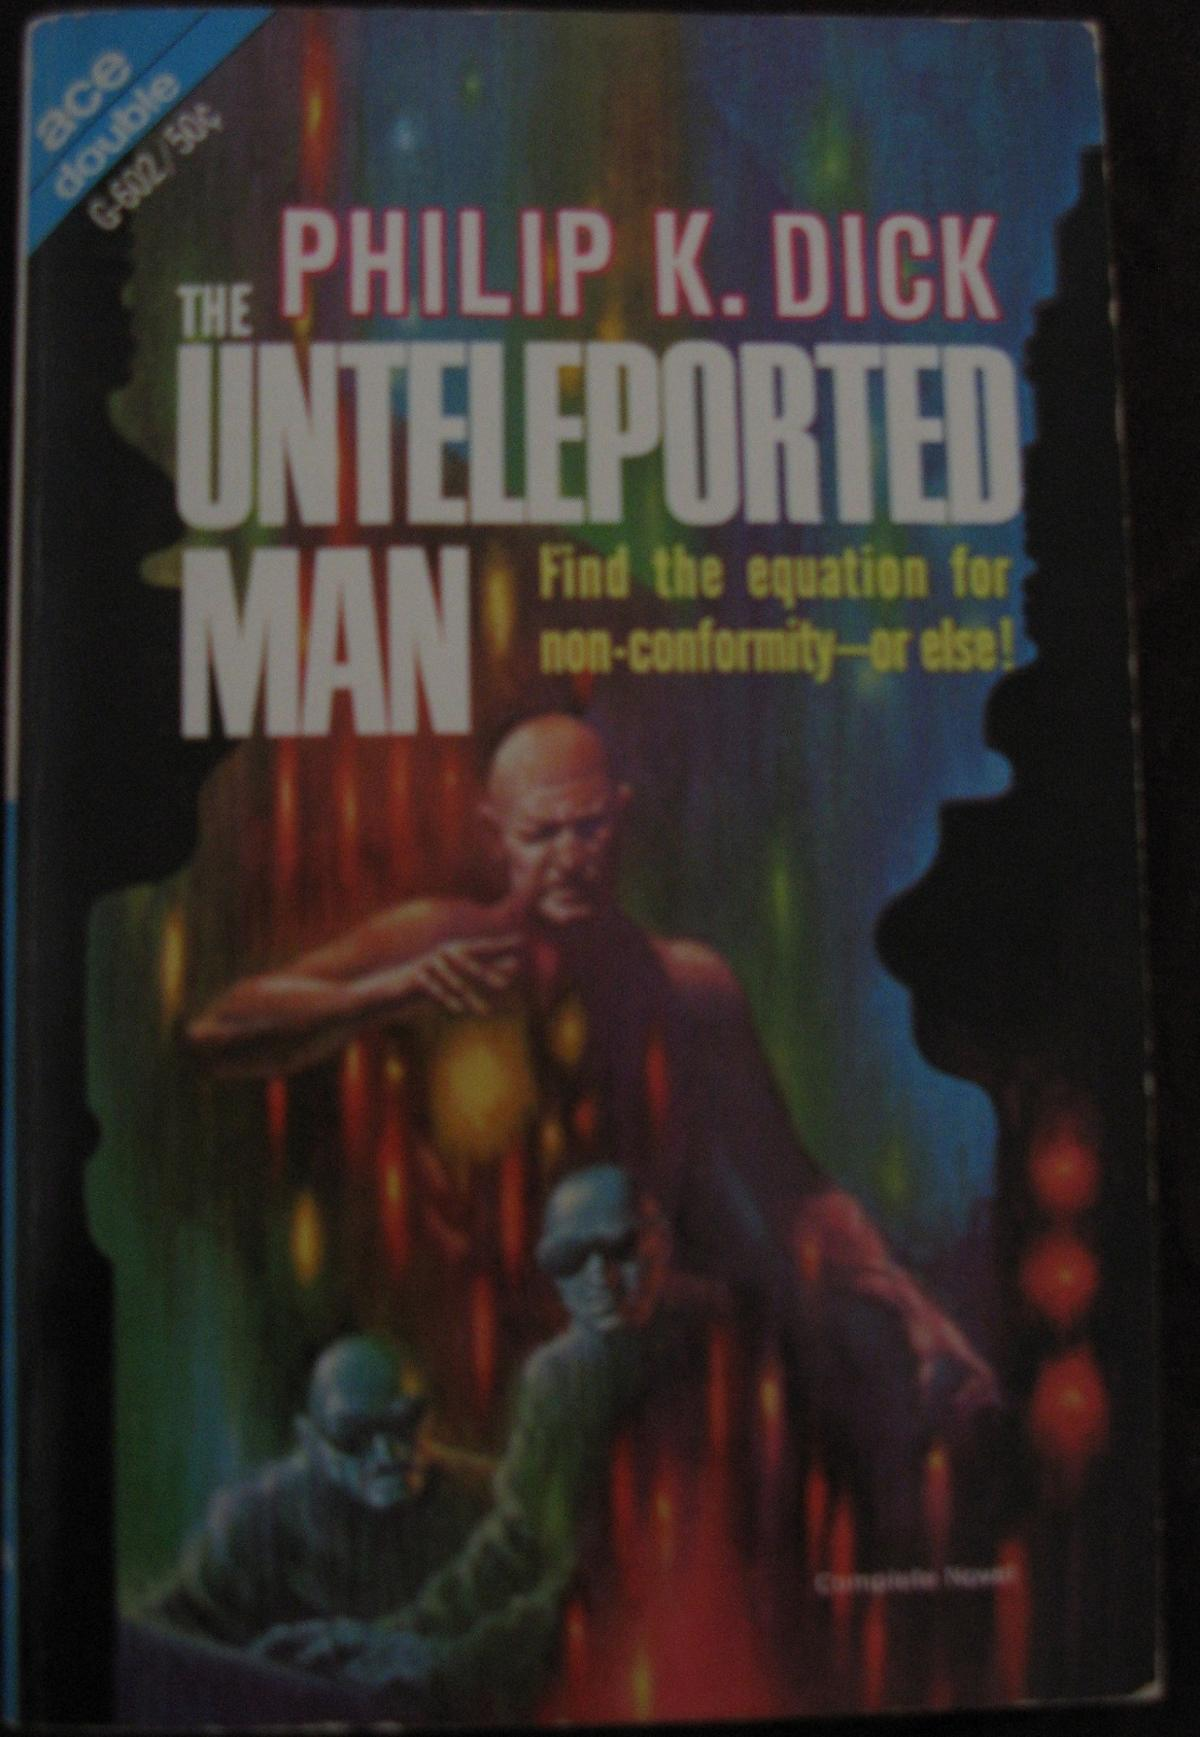 Unteleported... into another mans crotch!